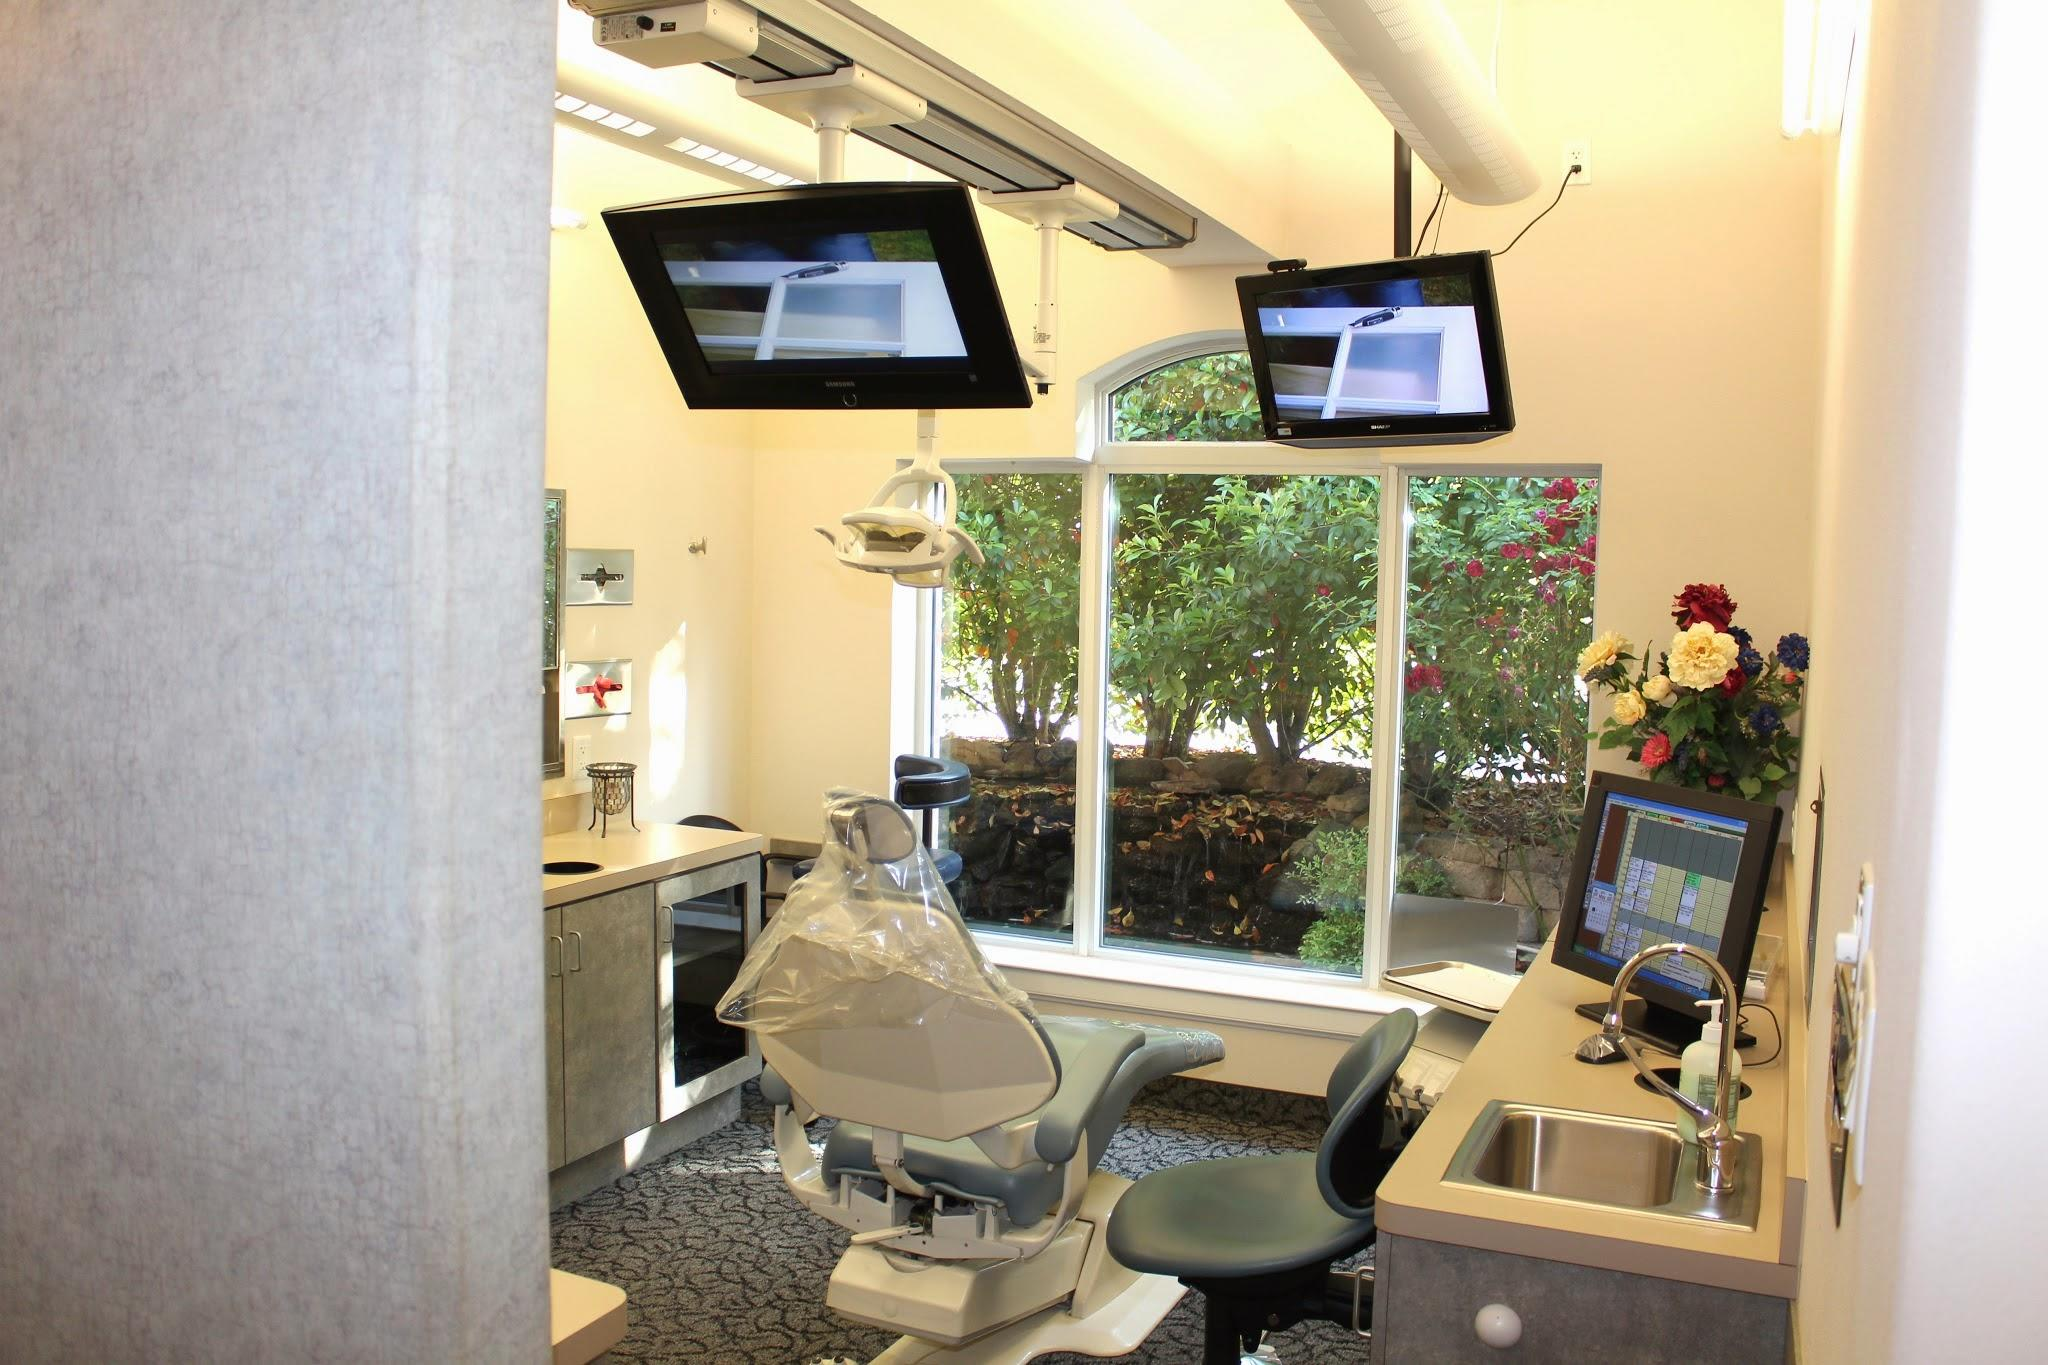 Anthony Dillard, DDS Family & Cosmetic Dentistry image 4